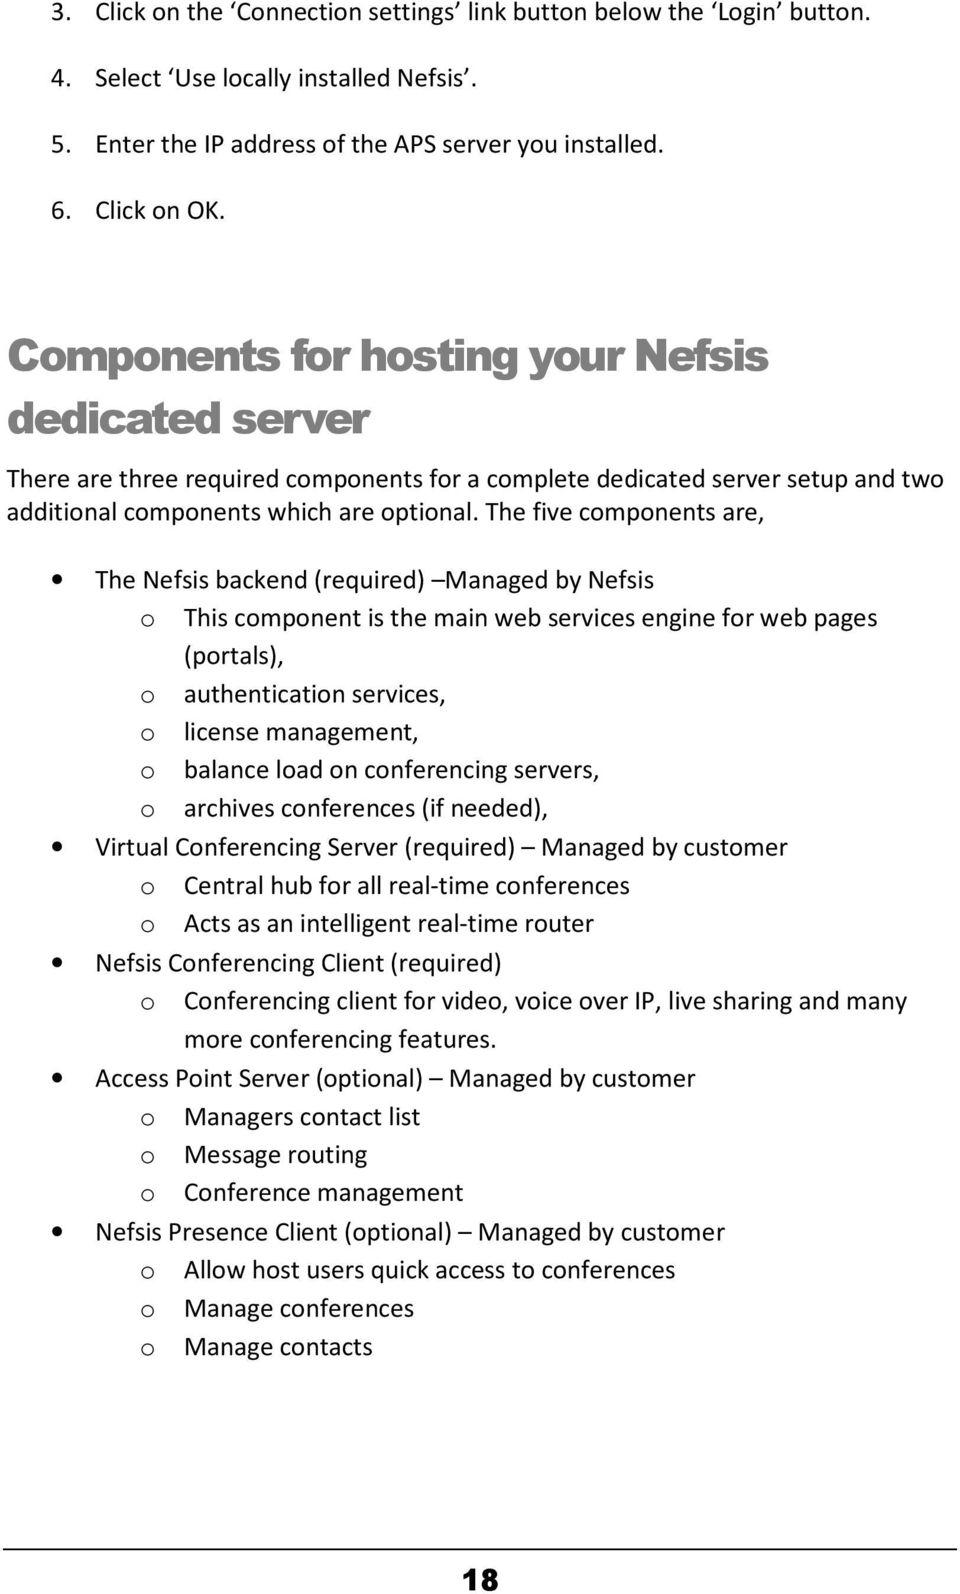 The five components are, The Nefsis backend (required) Managed by Nefsis o This component is the main web services engine for web pages (portals), o authentication services, o license management, o